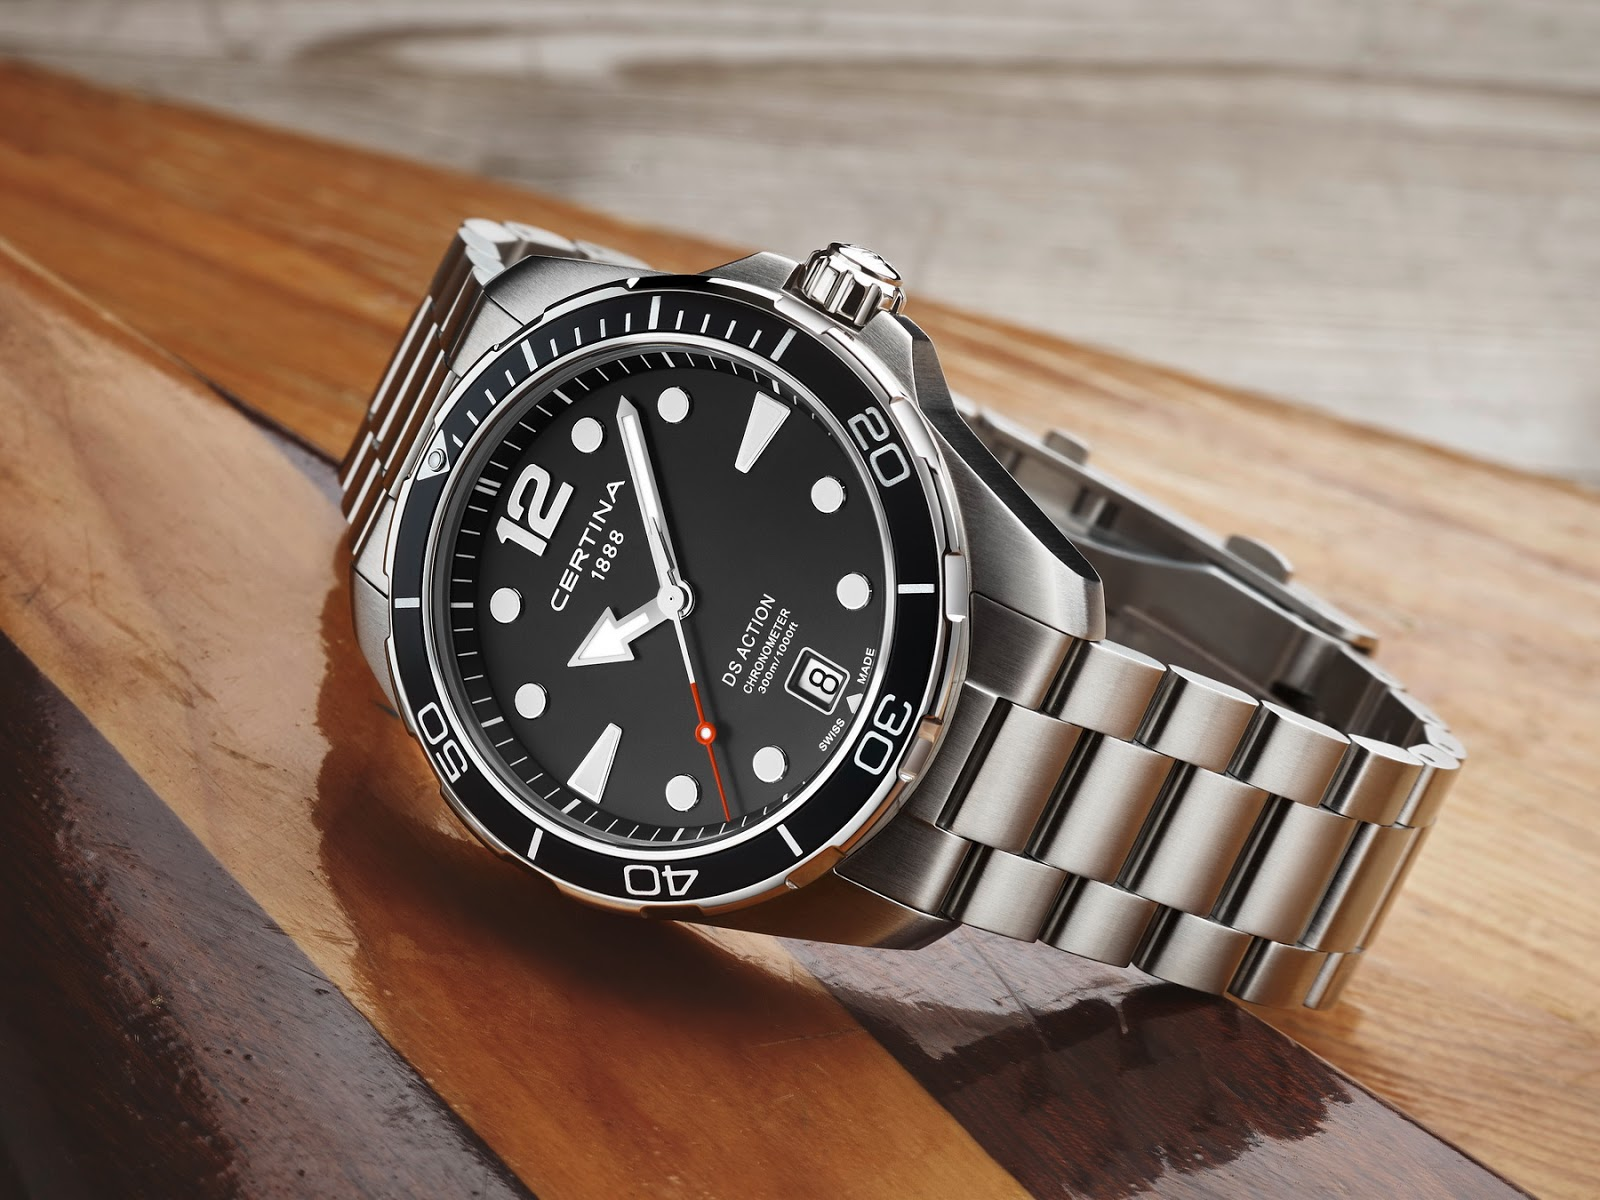 Certina's new COSC-Certified DS Action Divers CERTINA+DS+Action+DIVER+COSC-Certified+02